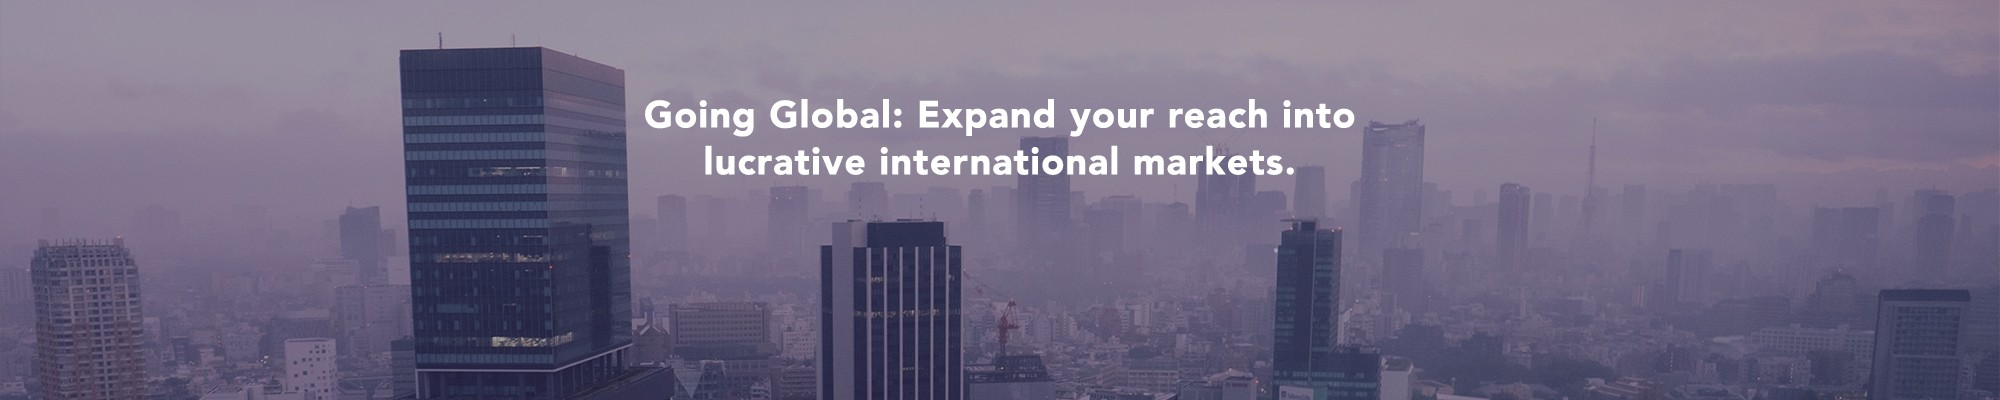 Kooomo Webinar Series: eCommerce Accelerated<br><br><br>Going Global: Expand your reach into lucrative international markets.